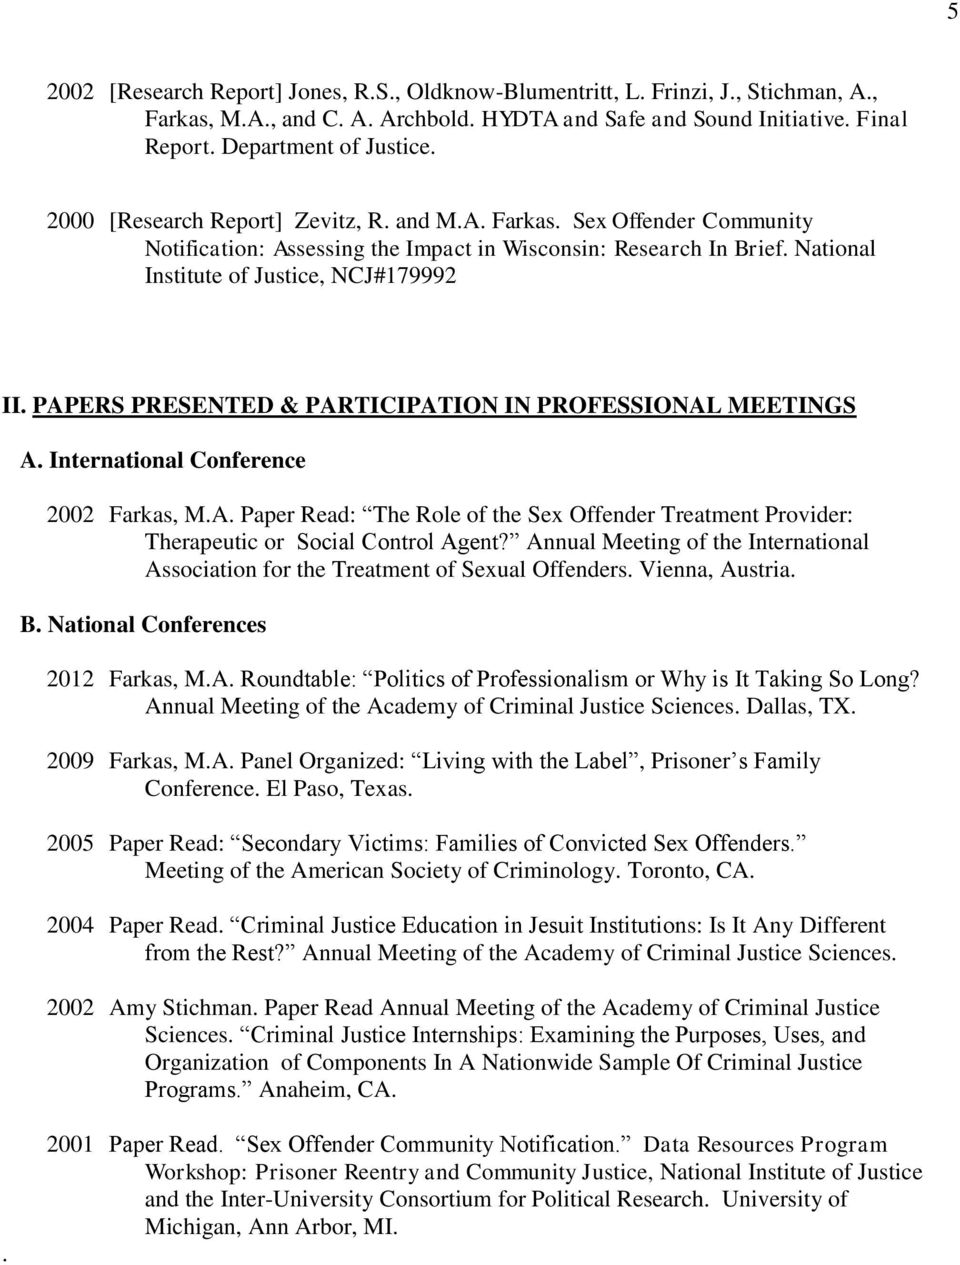 PAPERS PRESENTED & PARTICIPATION IN PROFESSIONAL MEETINGS A. International Conference 2002 Farkas, M.A. Paper Read: The Role of the Sex Offender Treatment Provider: Therapeutic or Social Control Agent?